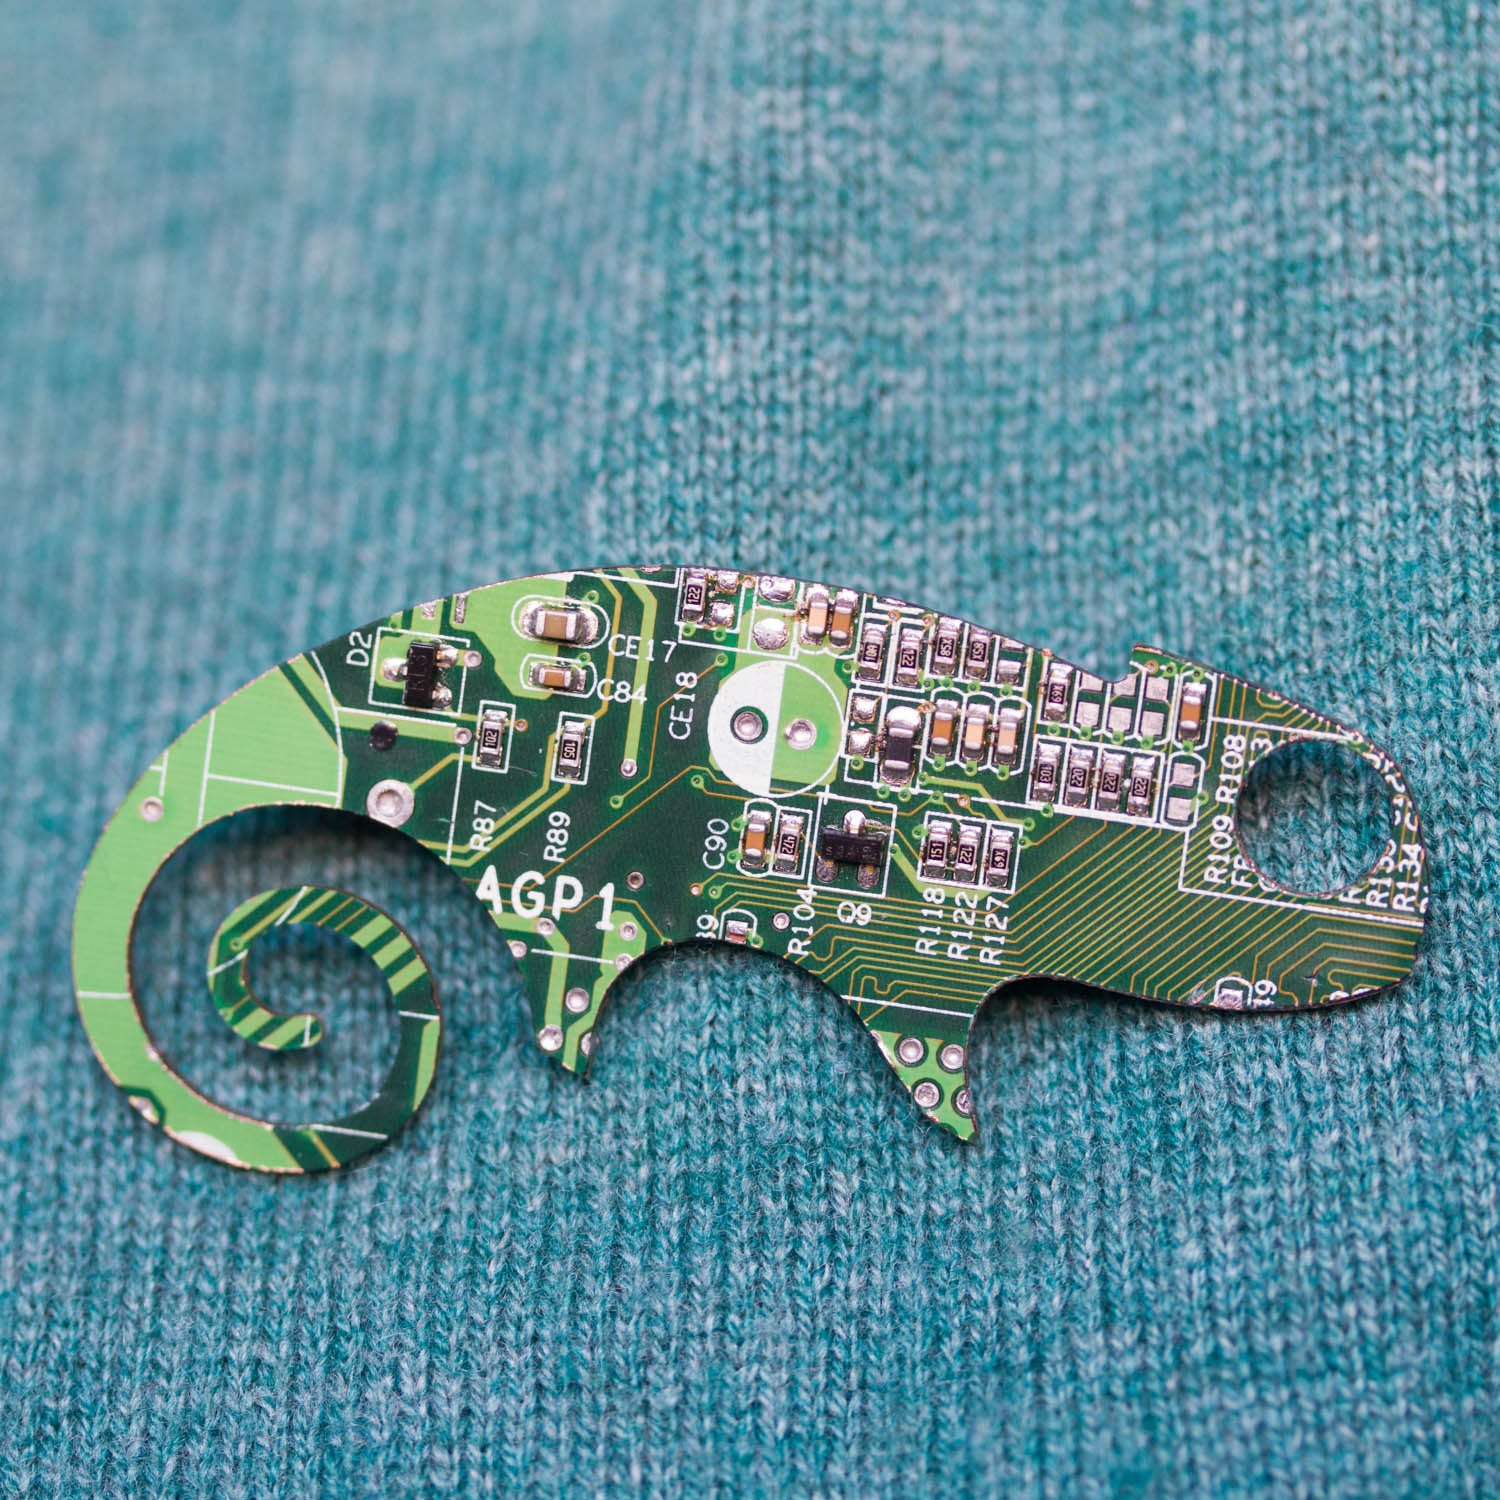 Circuit board Chameleon lizard - brooch, keychain or bag tag